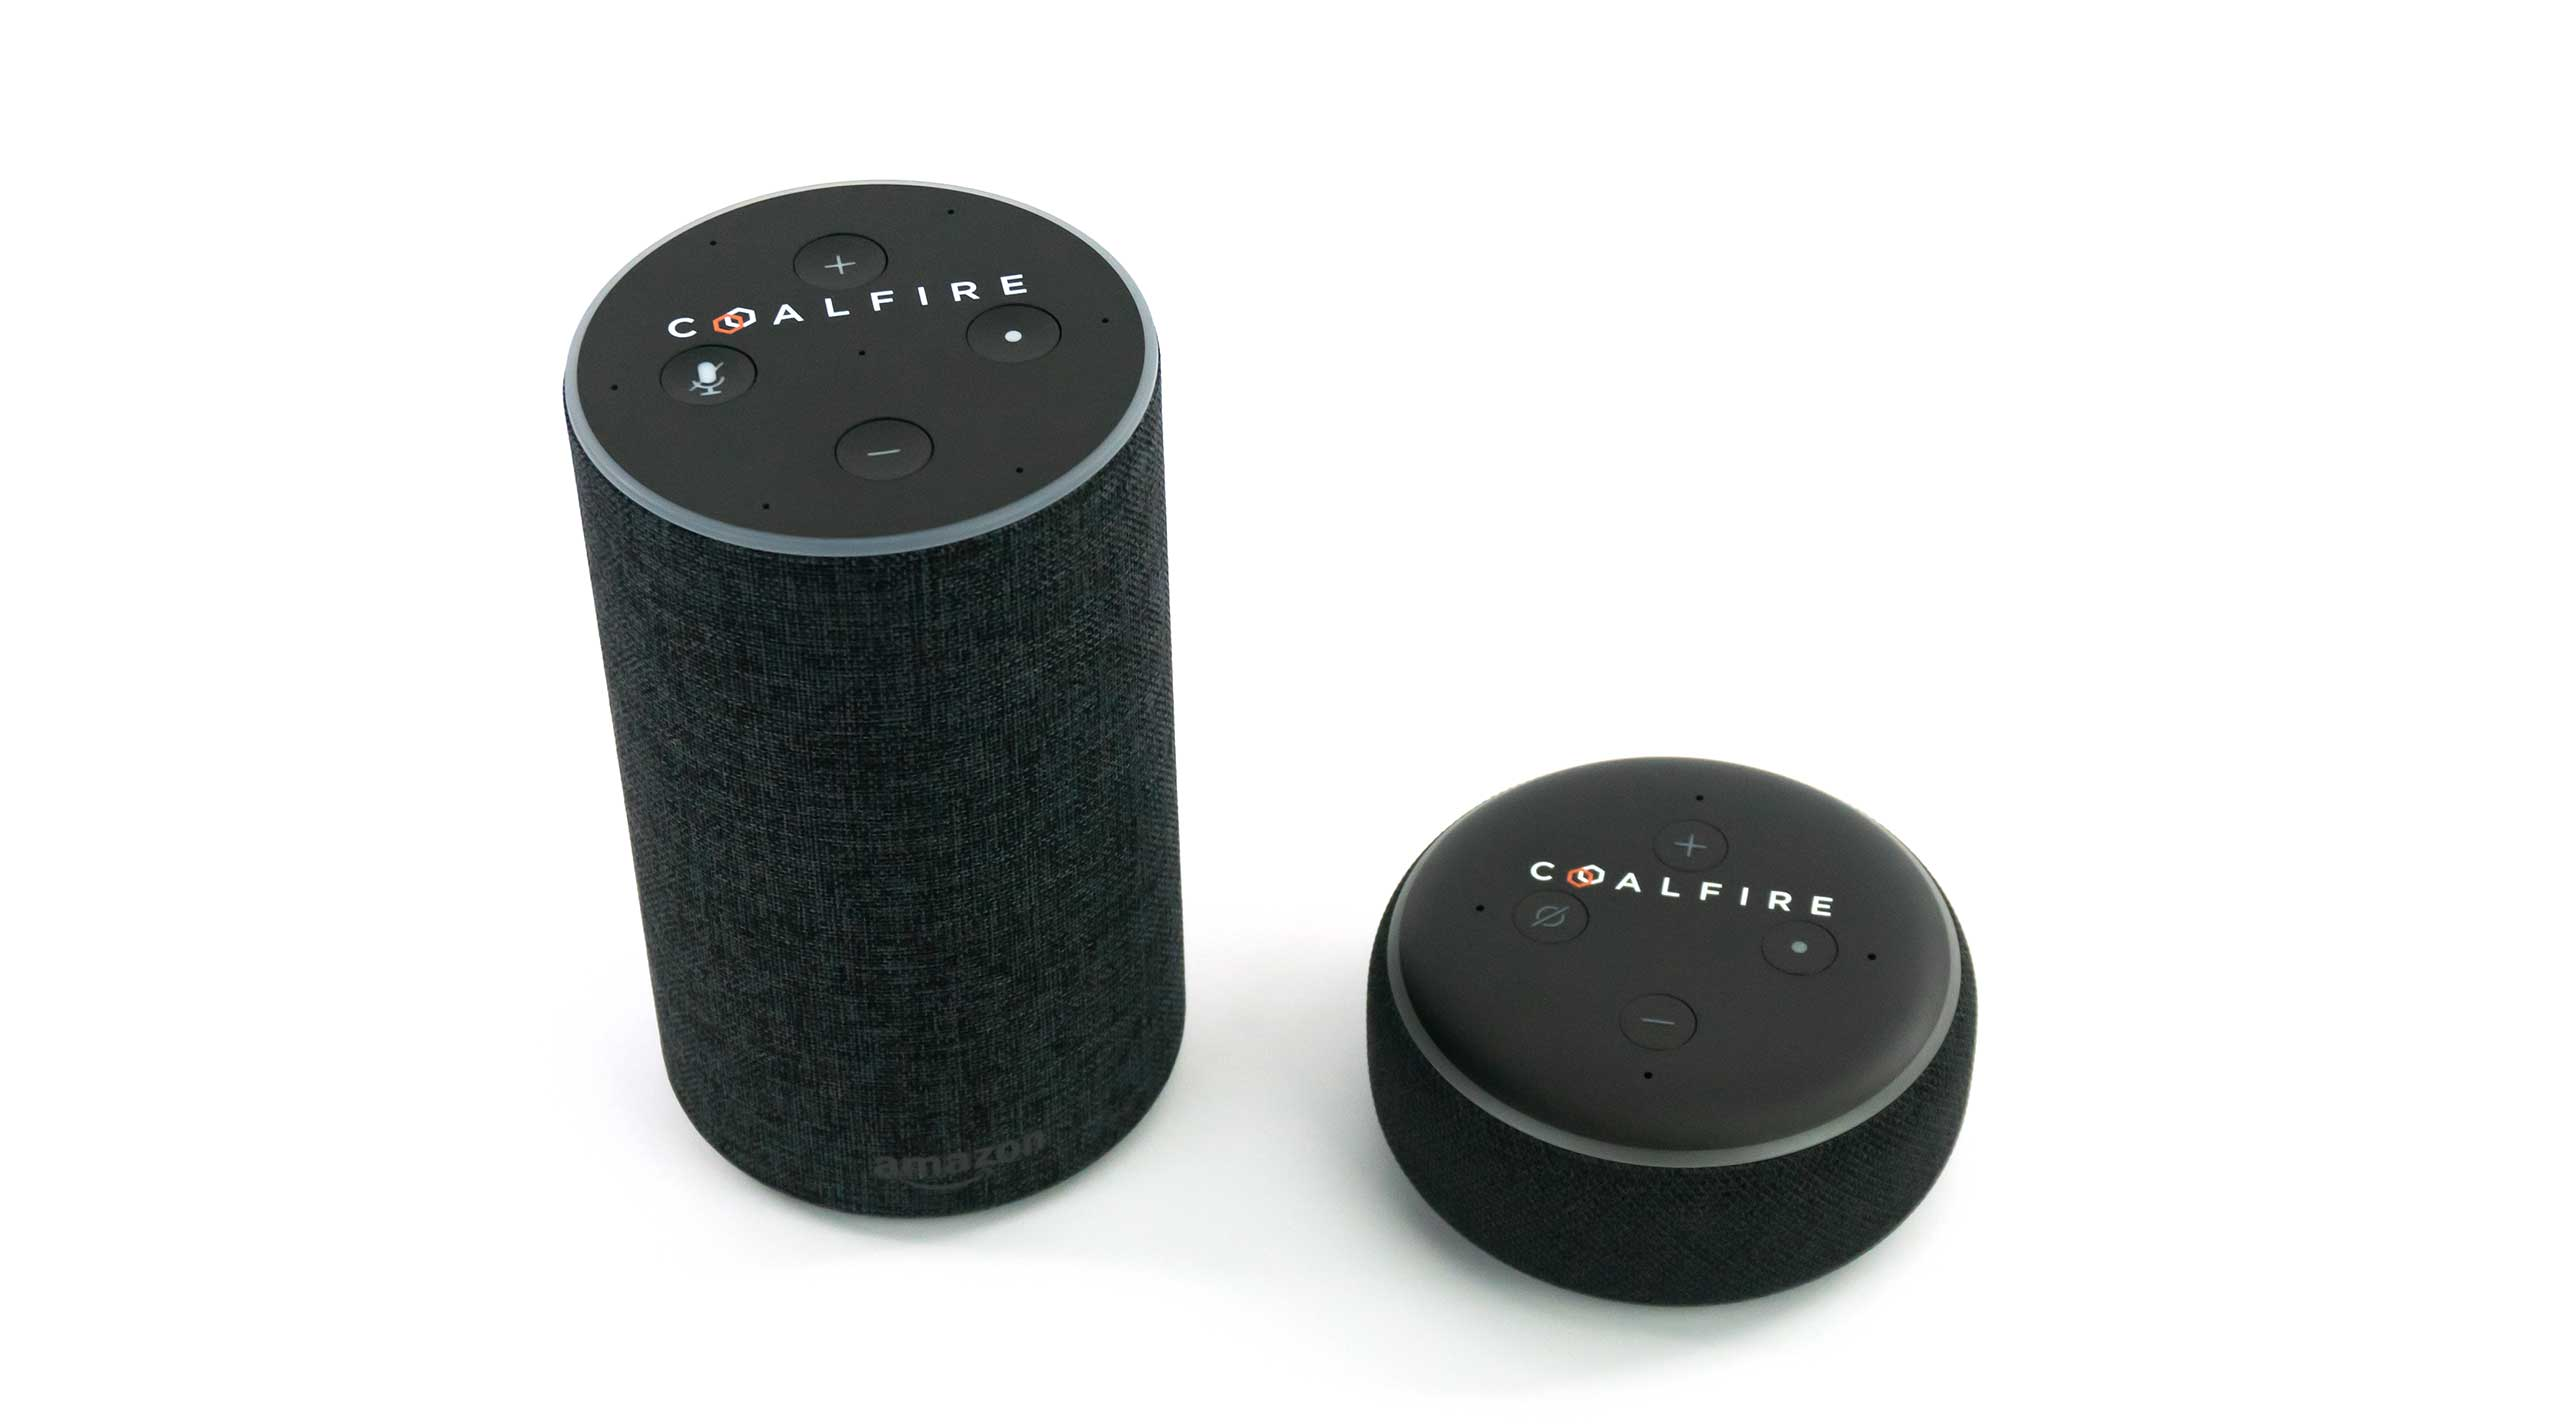 Coalfire customized the Amazon Echo and Echo Dot for company use